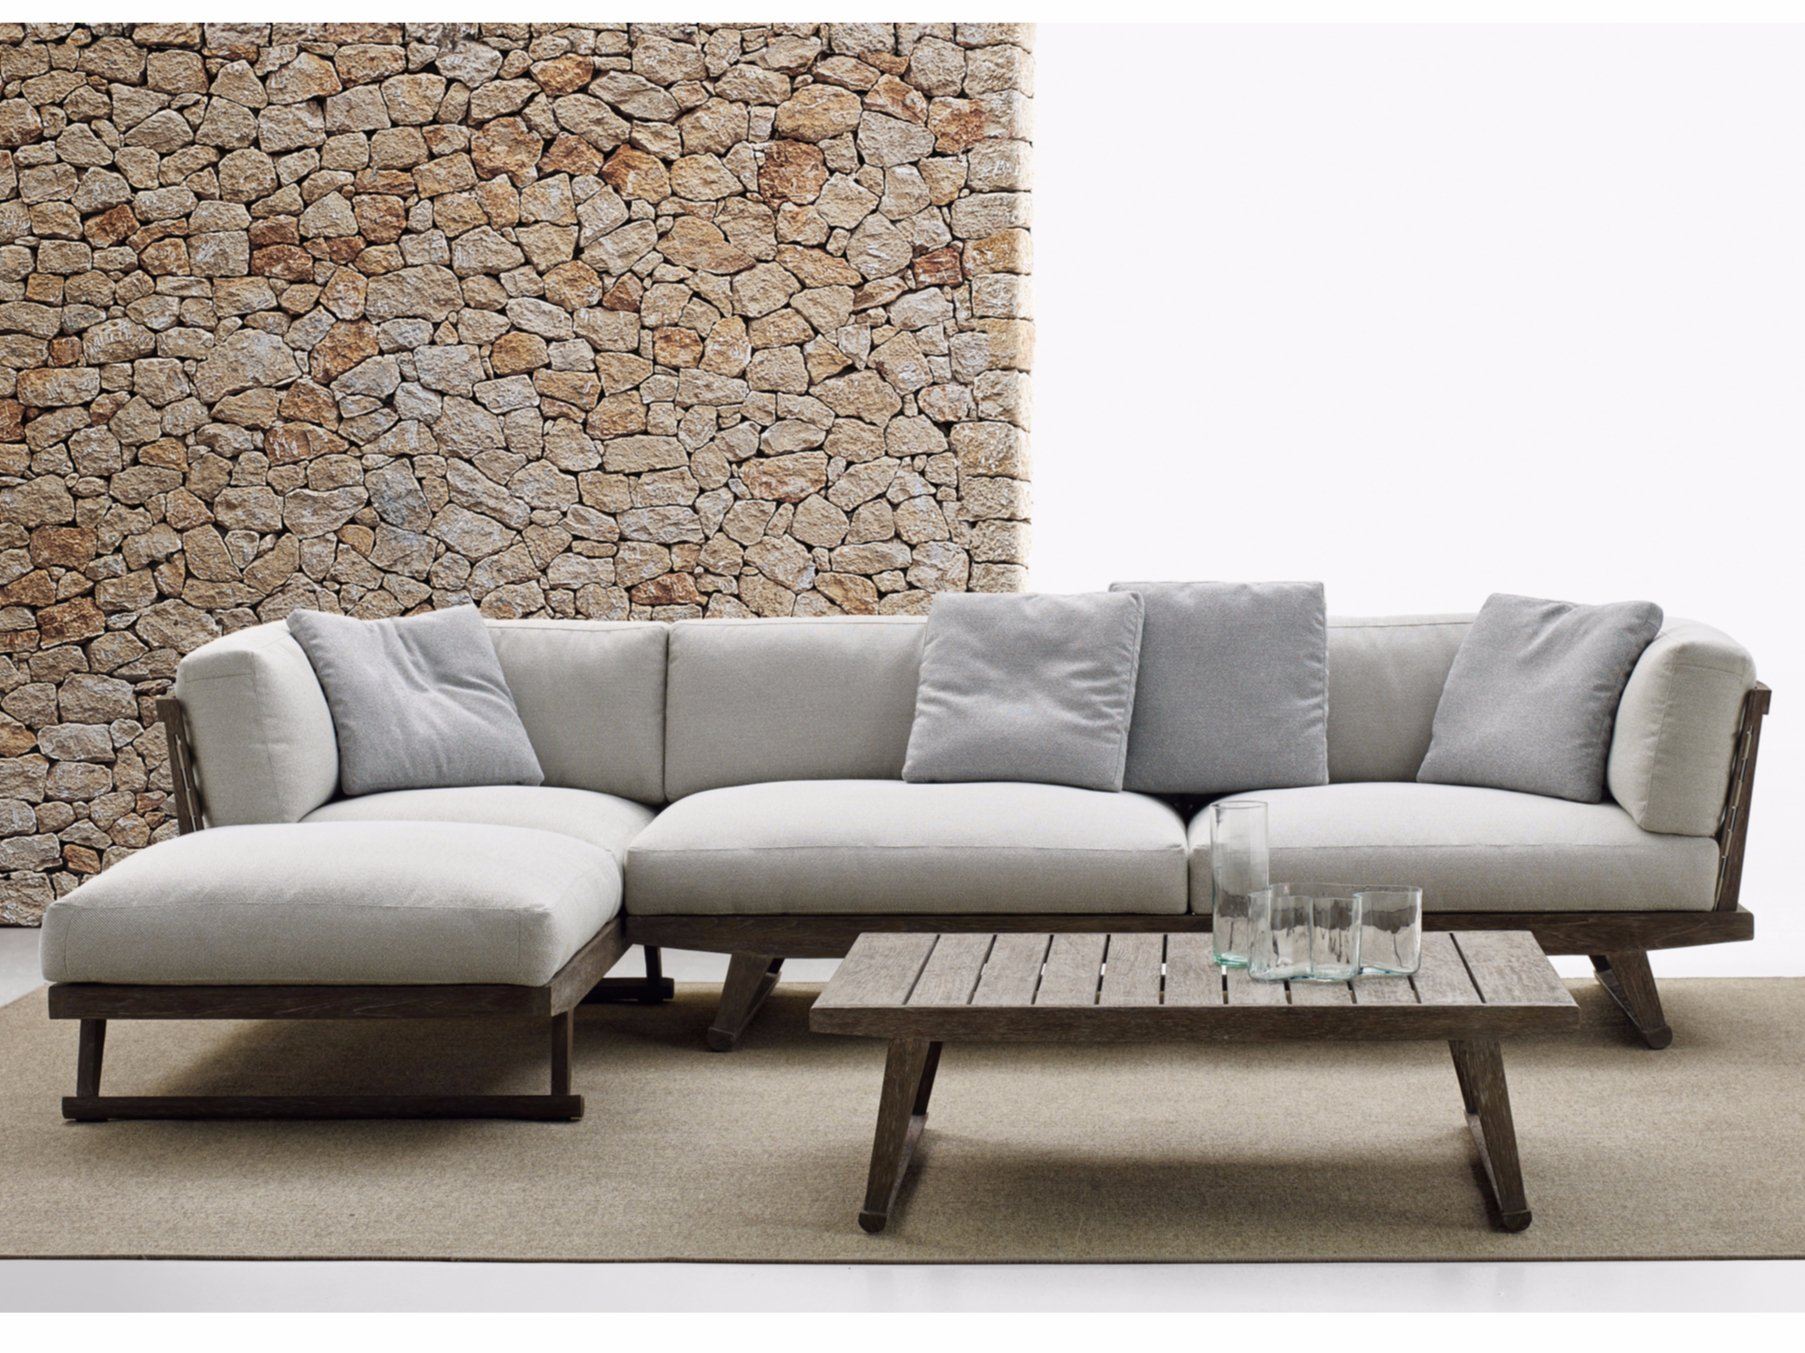 Gio sofa with chaise longue gio collection by b b italia - Chaise longue de jardin design ...